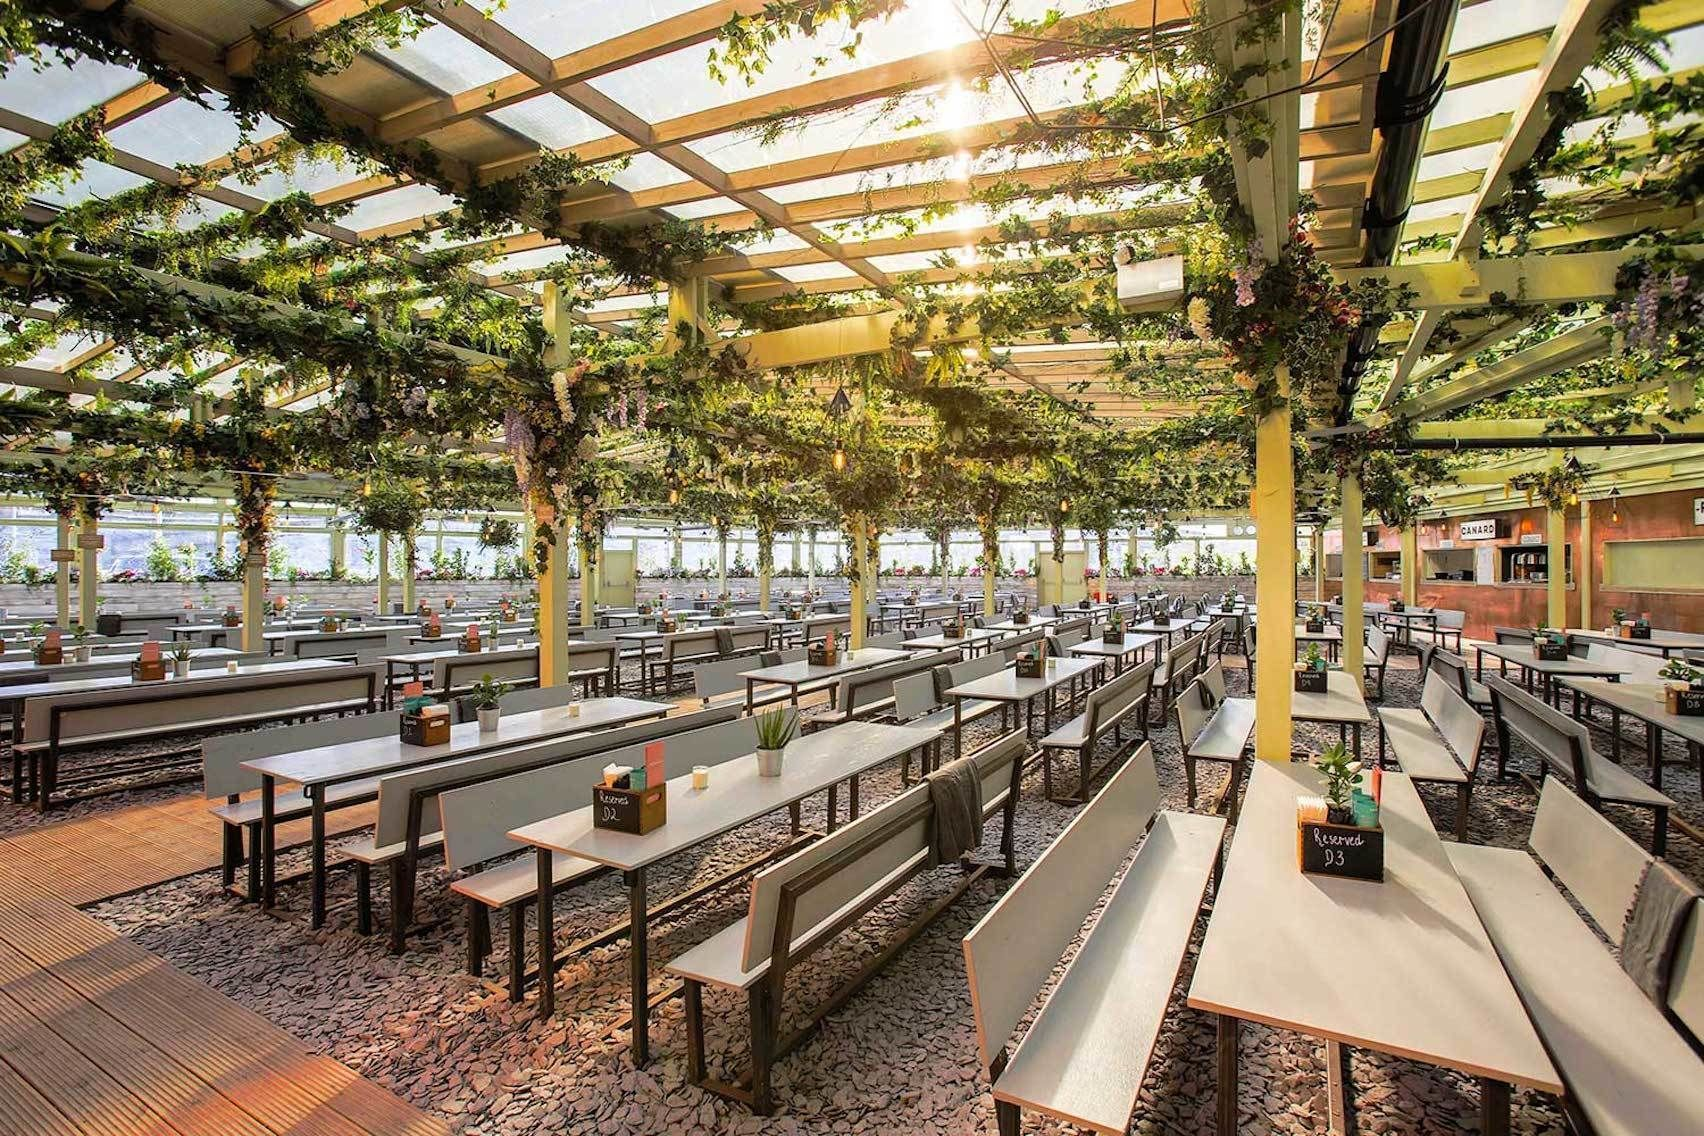 A huge rooftop bar with picnic benches and covered with a pergola